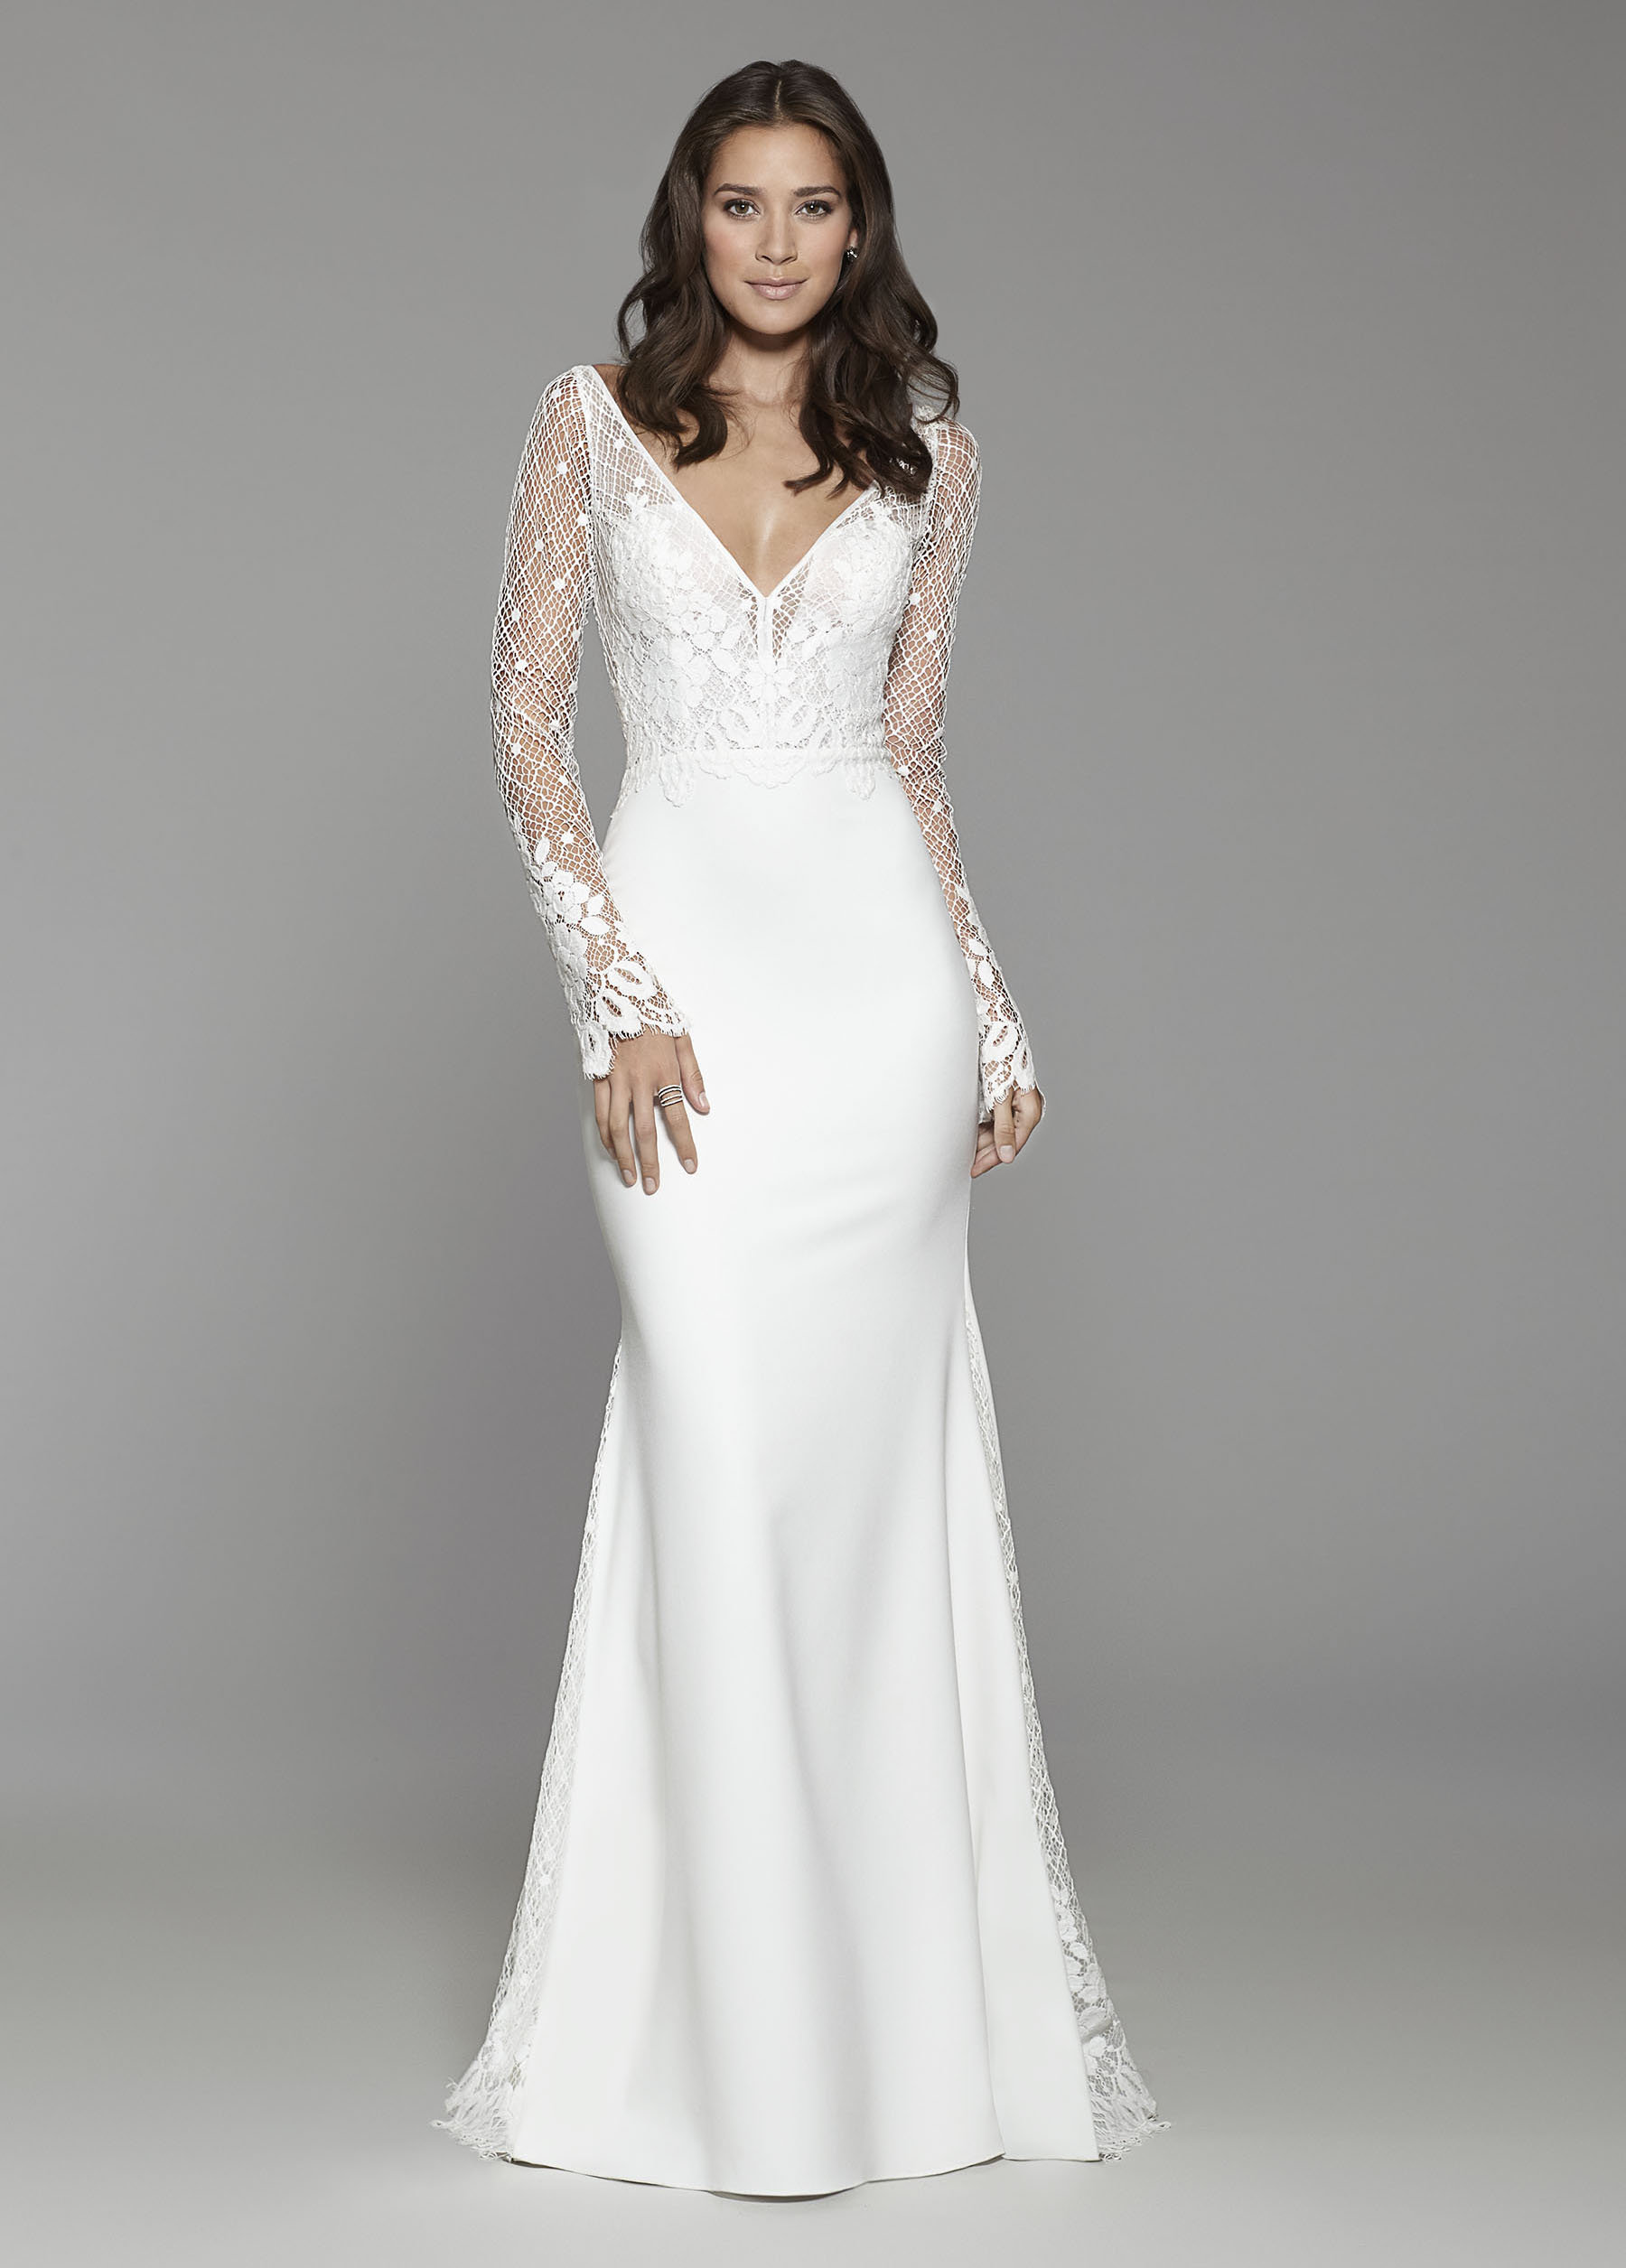 ec17cc2aac4b Bridal Gowns and Wedding Dresses by JLM Couture - Style 2757